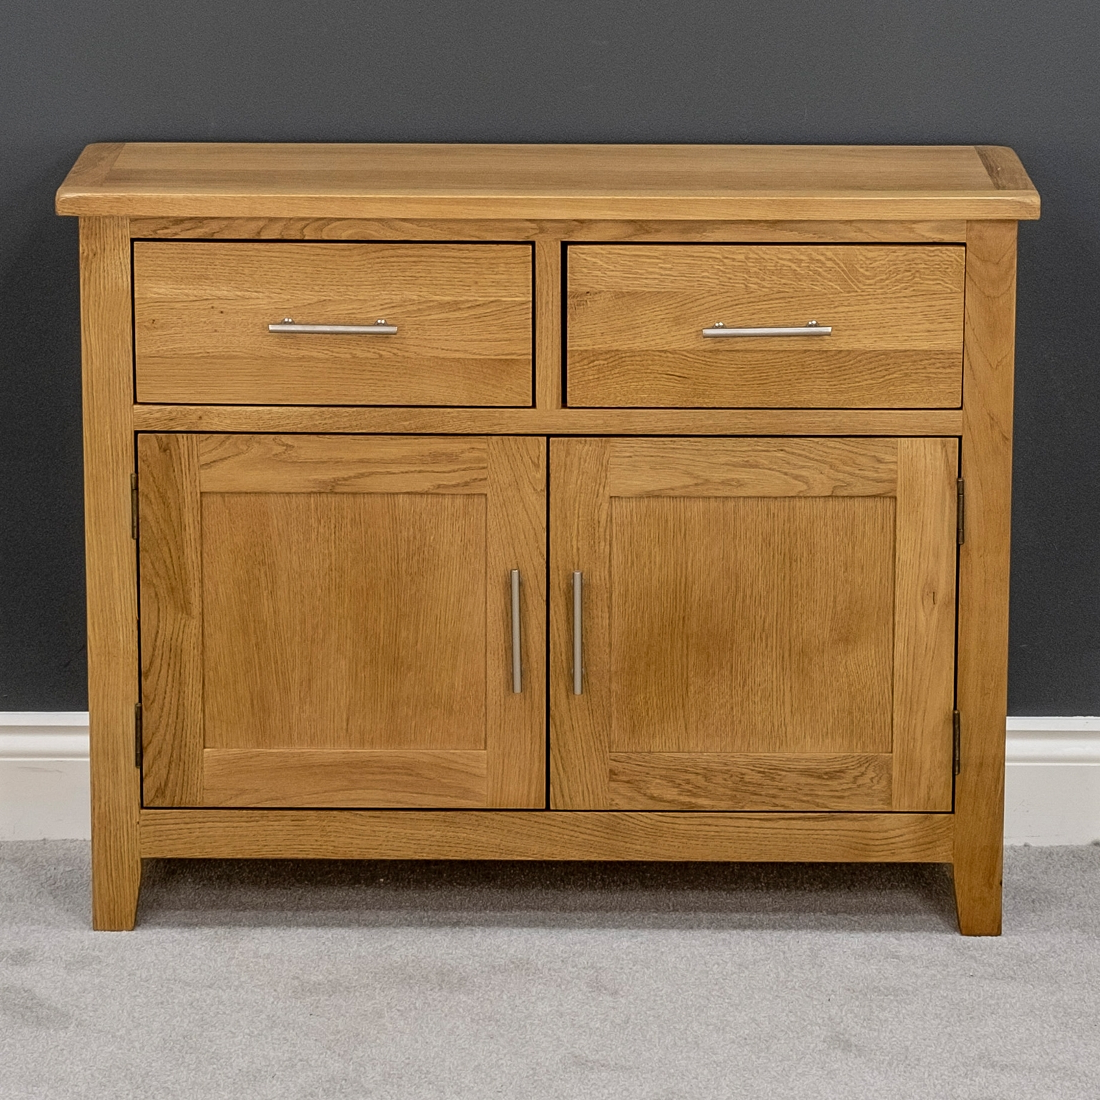 Most Current Details About Nebraska Oak Sideboard / Small Solid Wood 2 Door Storage  Cabinet & Cupboard With Natural Oak Wood 2 Door Sideboards (View 8 of 20)